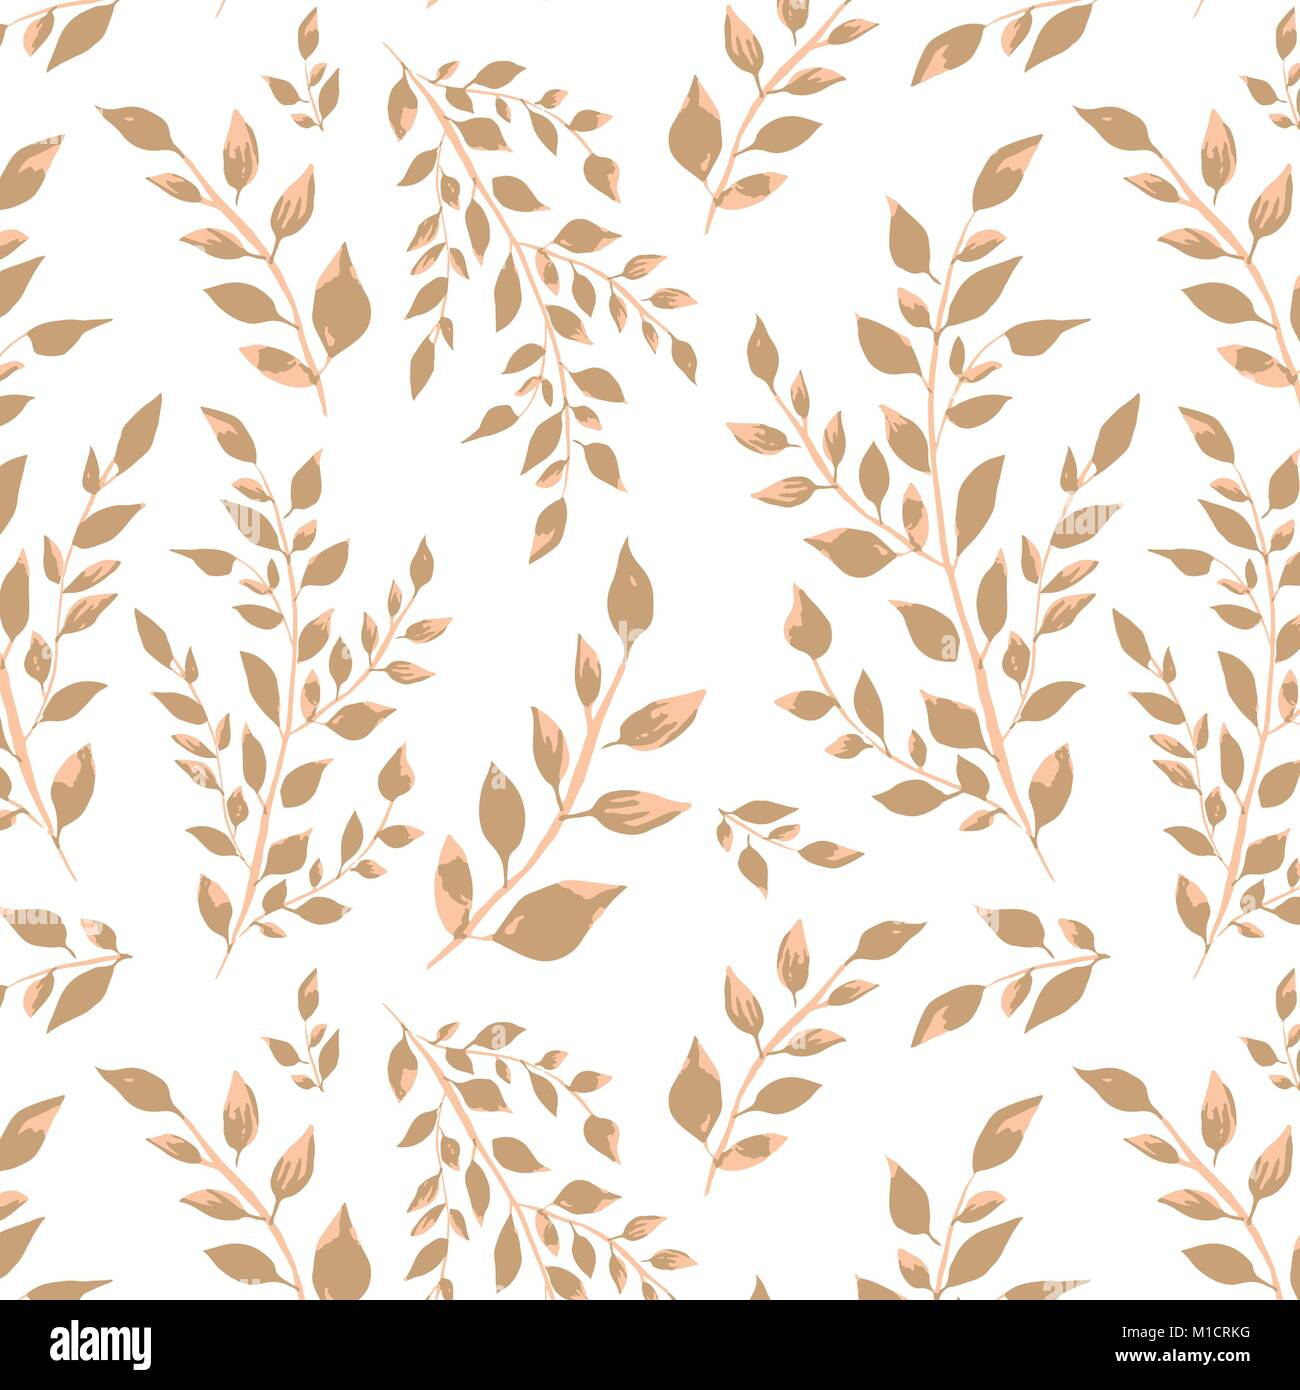 Leafy branches in creamy colors vector seamless pattern - Stock Image